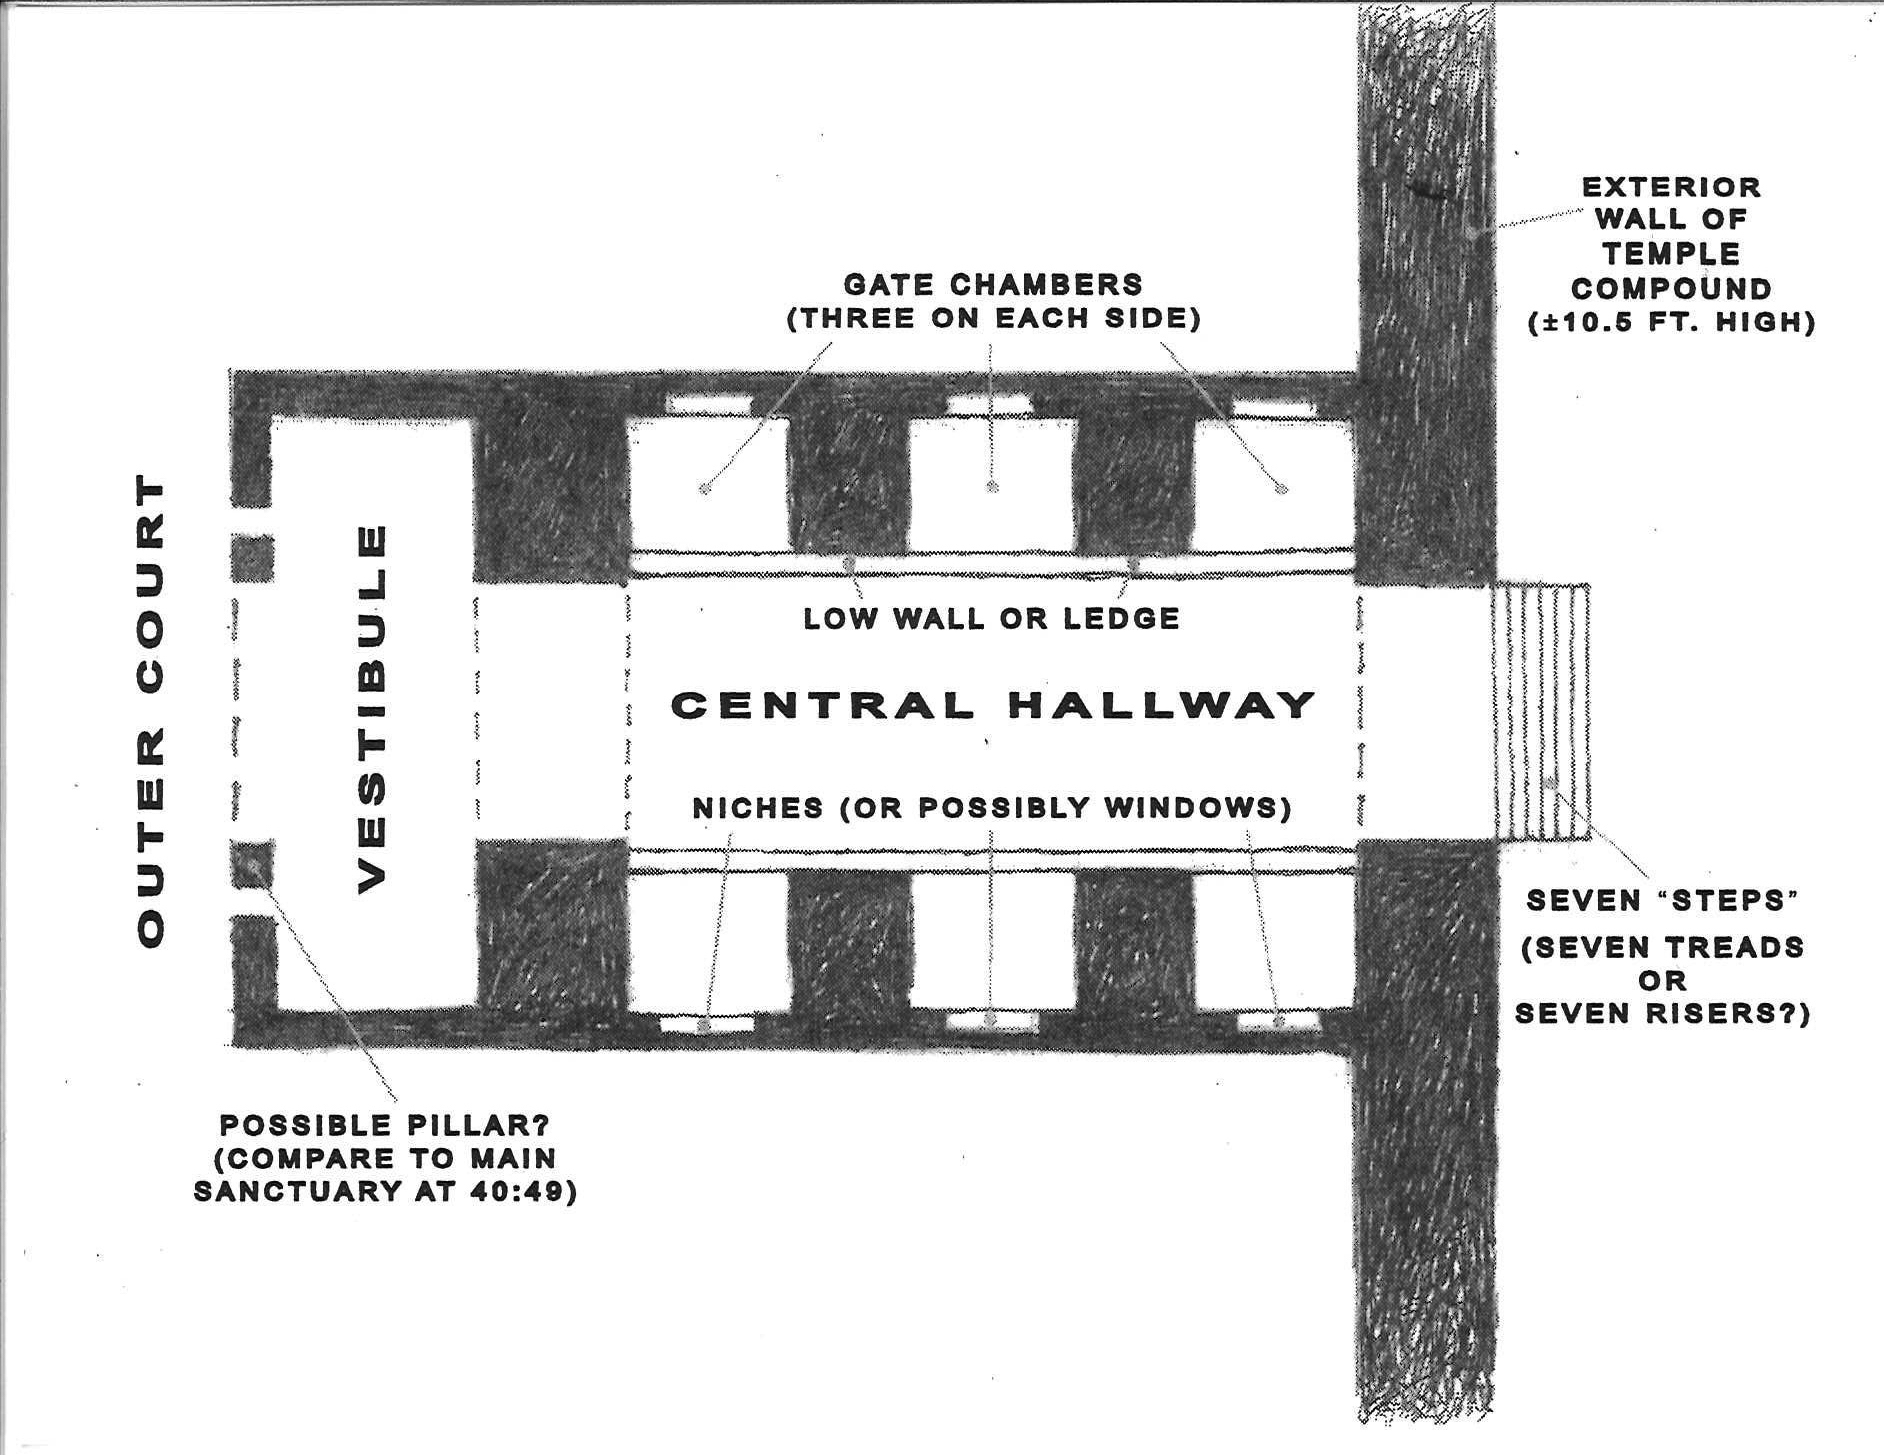 Figure 2:   Layout of the East Outer Gate   The Temple's three Outer Gates (from the exterior to the Outer Court) are identical. Steps lead up to a hallway with three small chambers on each side. The East Gate has seven steps; the numbers of steps to the North and South Outer Gates are not stated (but are presumably the same.) After passing between the three pairs of flanking chambers, one enters the Outer Court through a Vestibule.  The Temple's three Inner Gates (from the Outer Court to the Inner Court) are also identical to each other, and to the three Outer Gates except for two things. First, they are reversed from the Outer Gates; one ascends steps from the Outer Court into a Vestibule, and then passes between the three pairs of opposite small chambers flanking the hallway. (This reversal may be seen in Figure 1 on the preceding page.) The second difference from the Outer Gates is that all three Inner Gates are said to be reached by eight steps (instead of seven).   Illustration by the author, based on commentary in Block,  Ezekiel , Vol. 2.